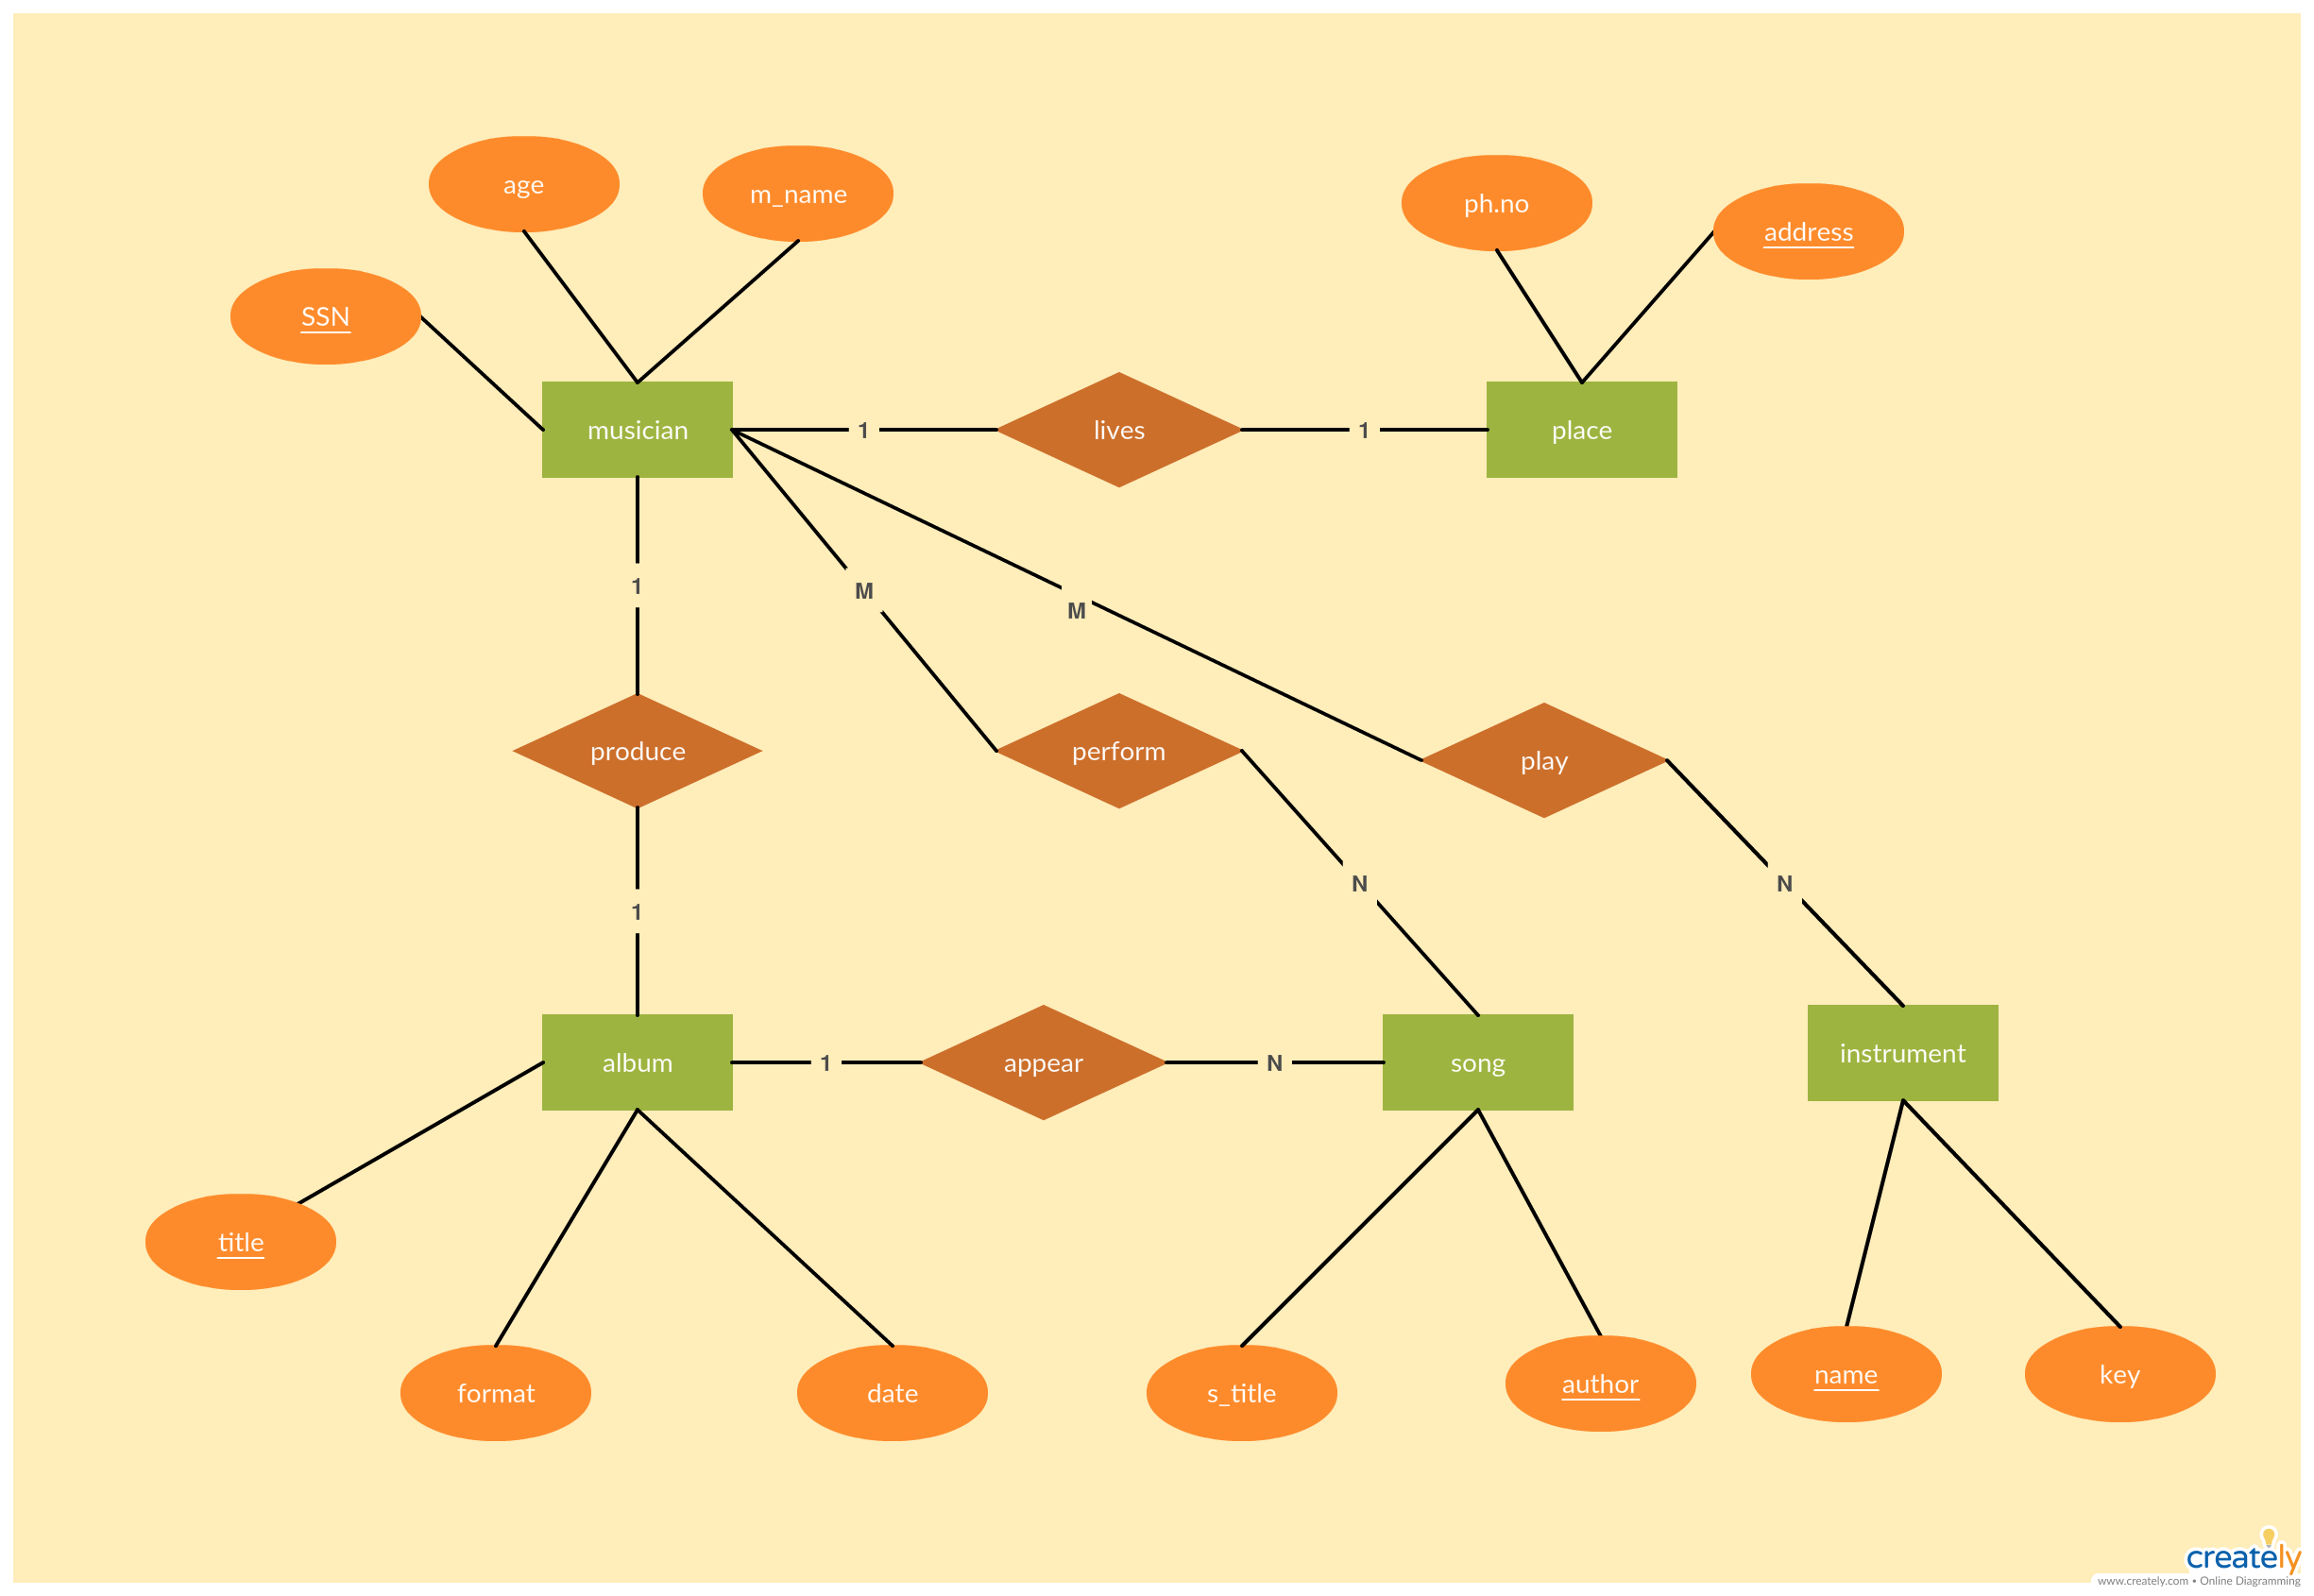 medium resolution of musician record entity relationship diagram example click the image to get all the important aspects